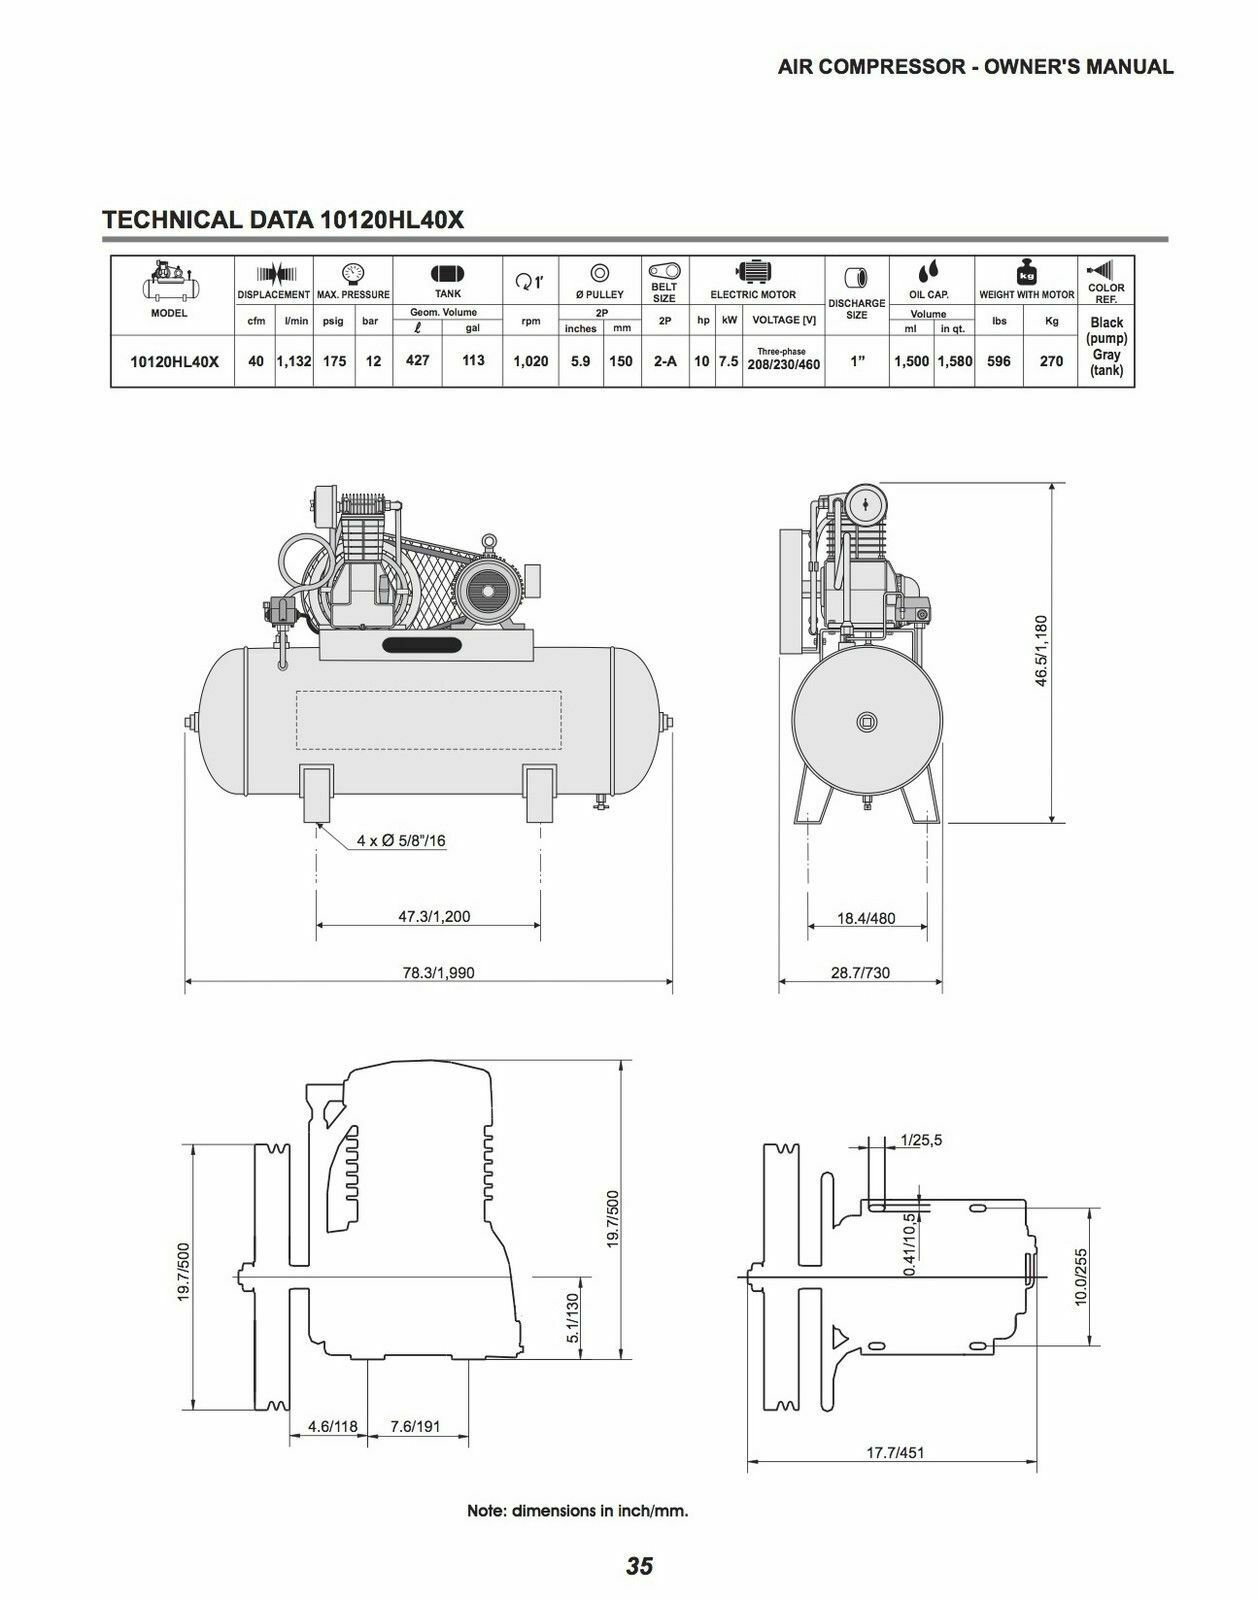 Complete Parts List Drawing For Ingersoll Rand Air